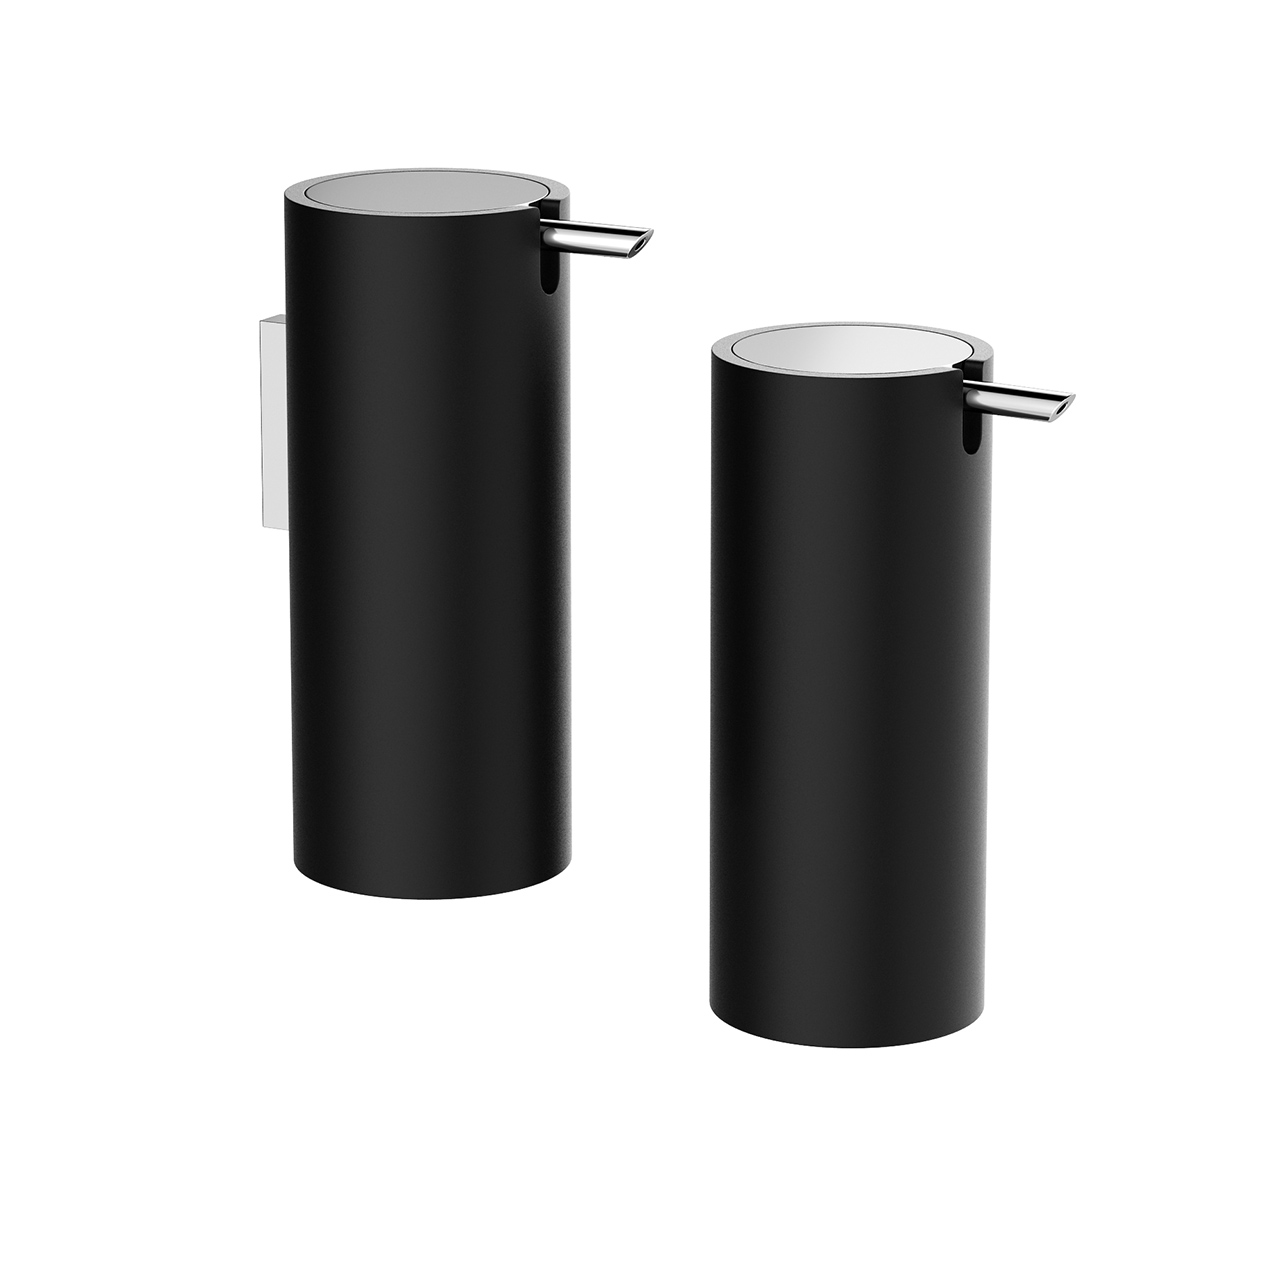 Black Stone Soap Dispenser by Decor Walther